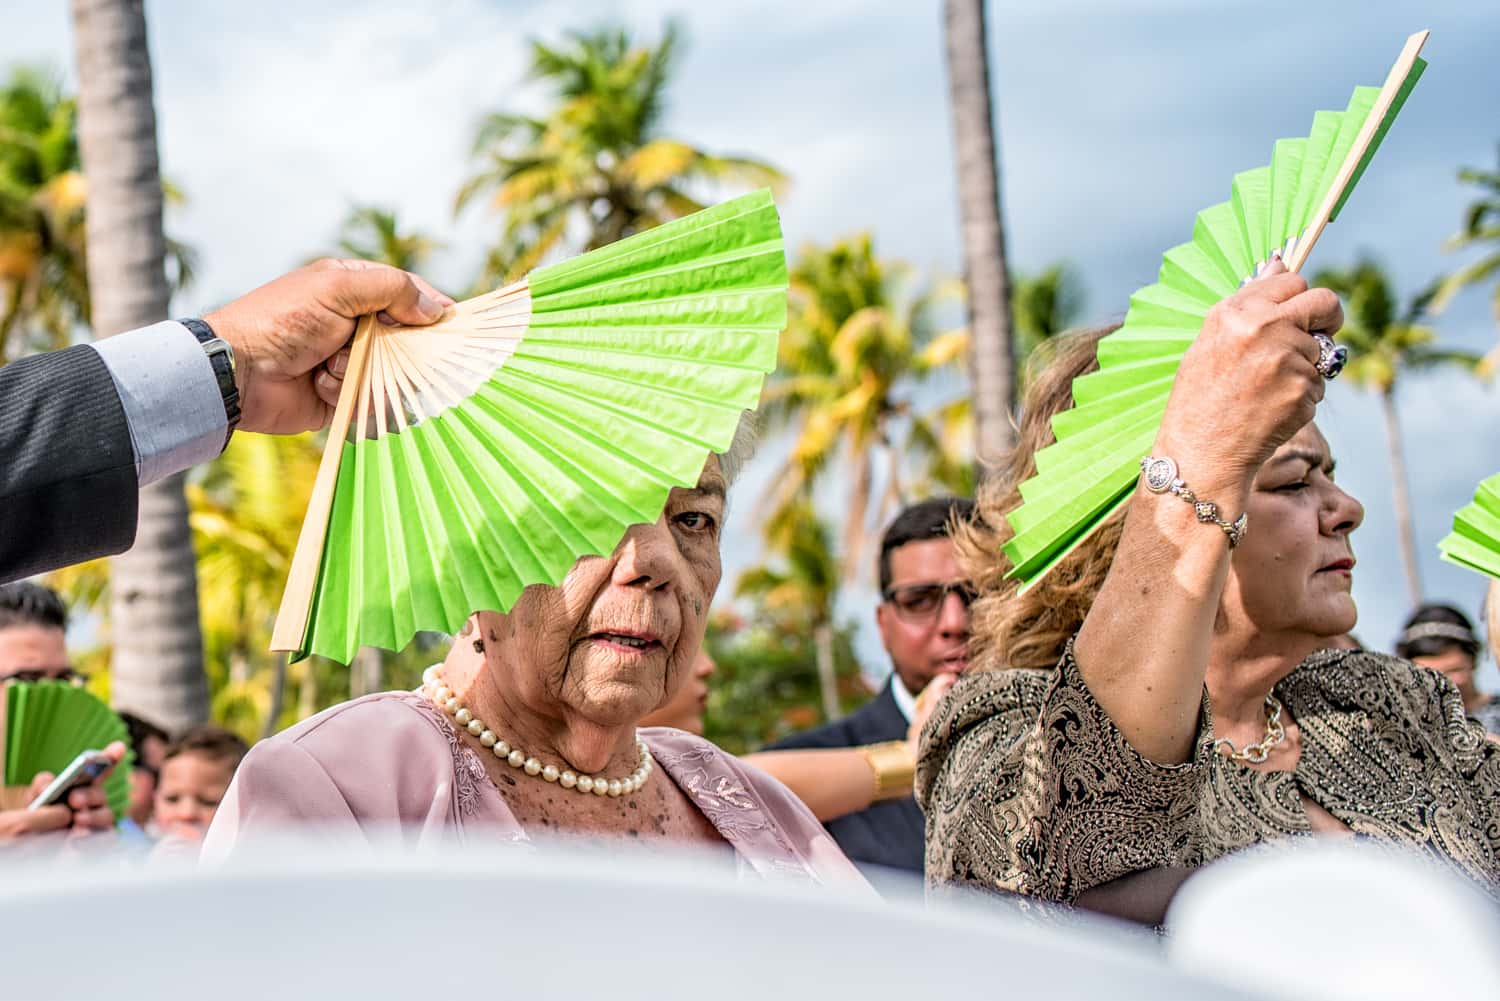 Man fanning an old woman with a green hand fan sitting at the wedding ceremony.